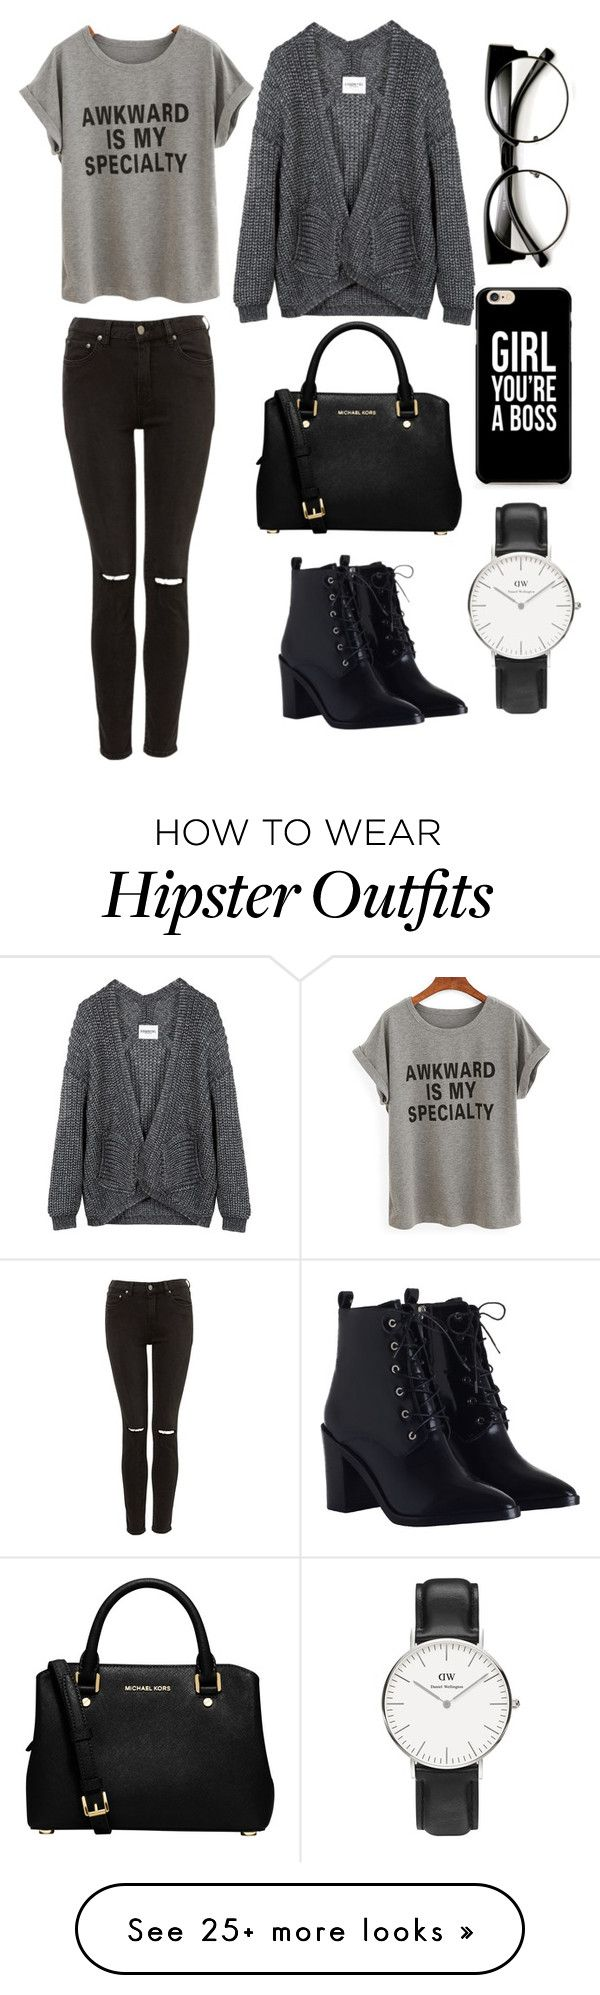 """""""september's look"""" by lizaxliam on Polyvore featuring Zimmermann, MICHAEL Michael Kors and Daniel Wellington"""